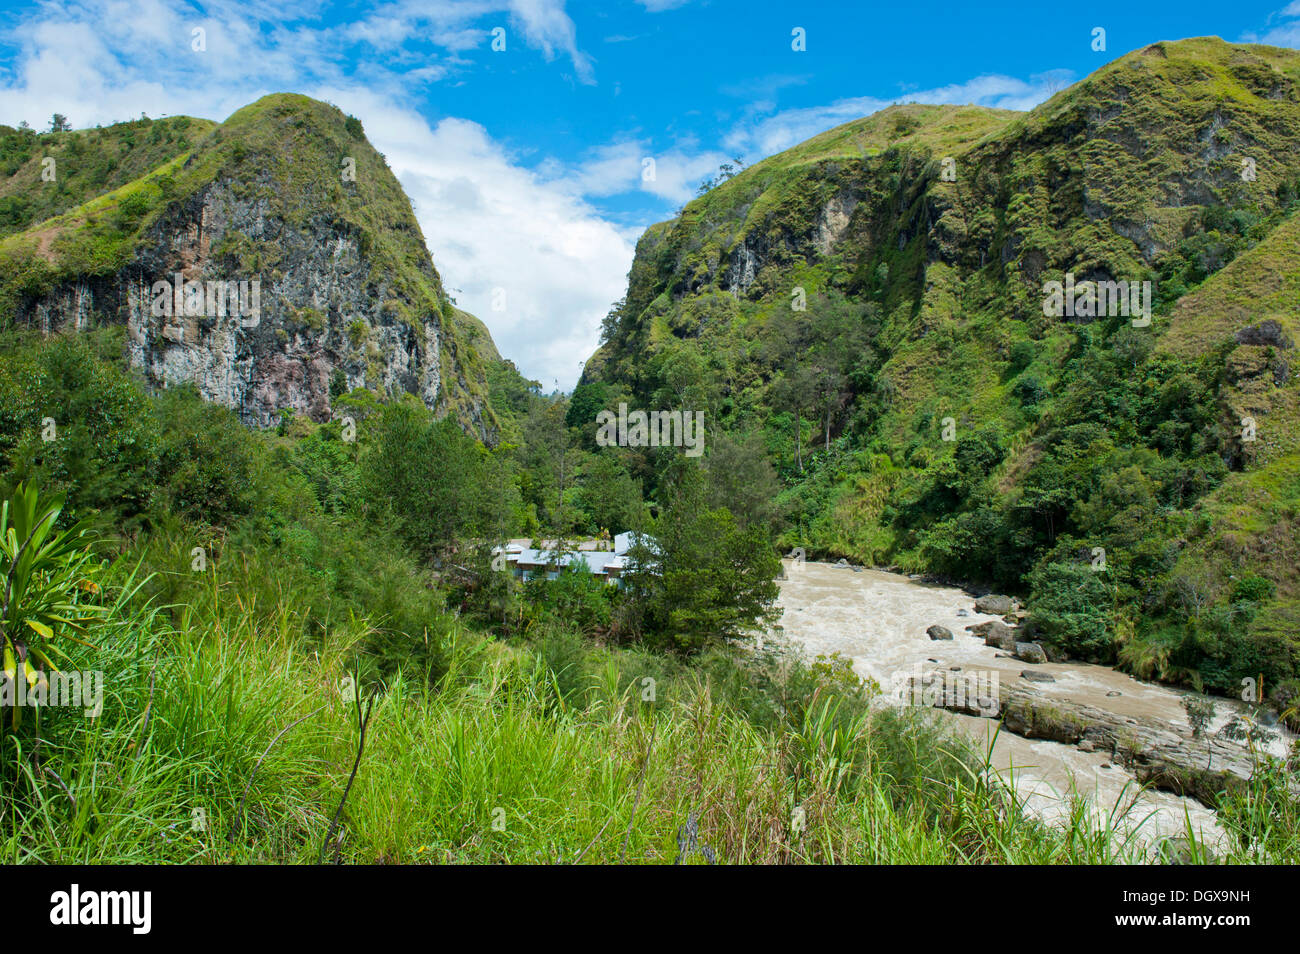 Lae River in the highlands, Papua New Guinea - Stock Image